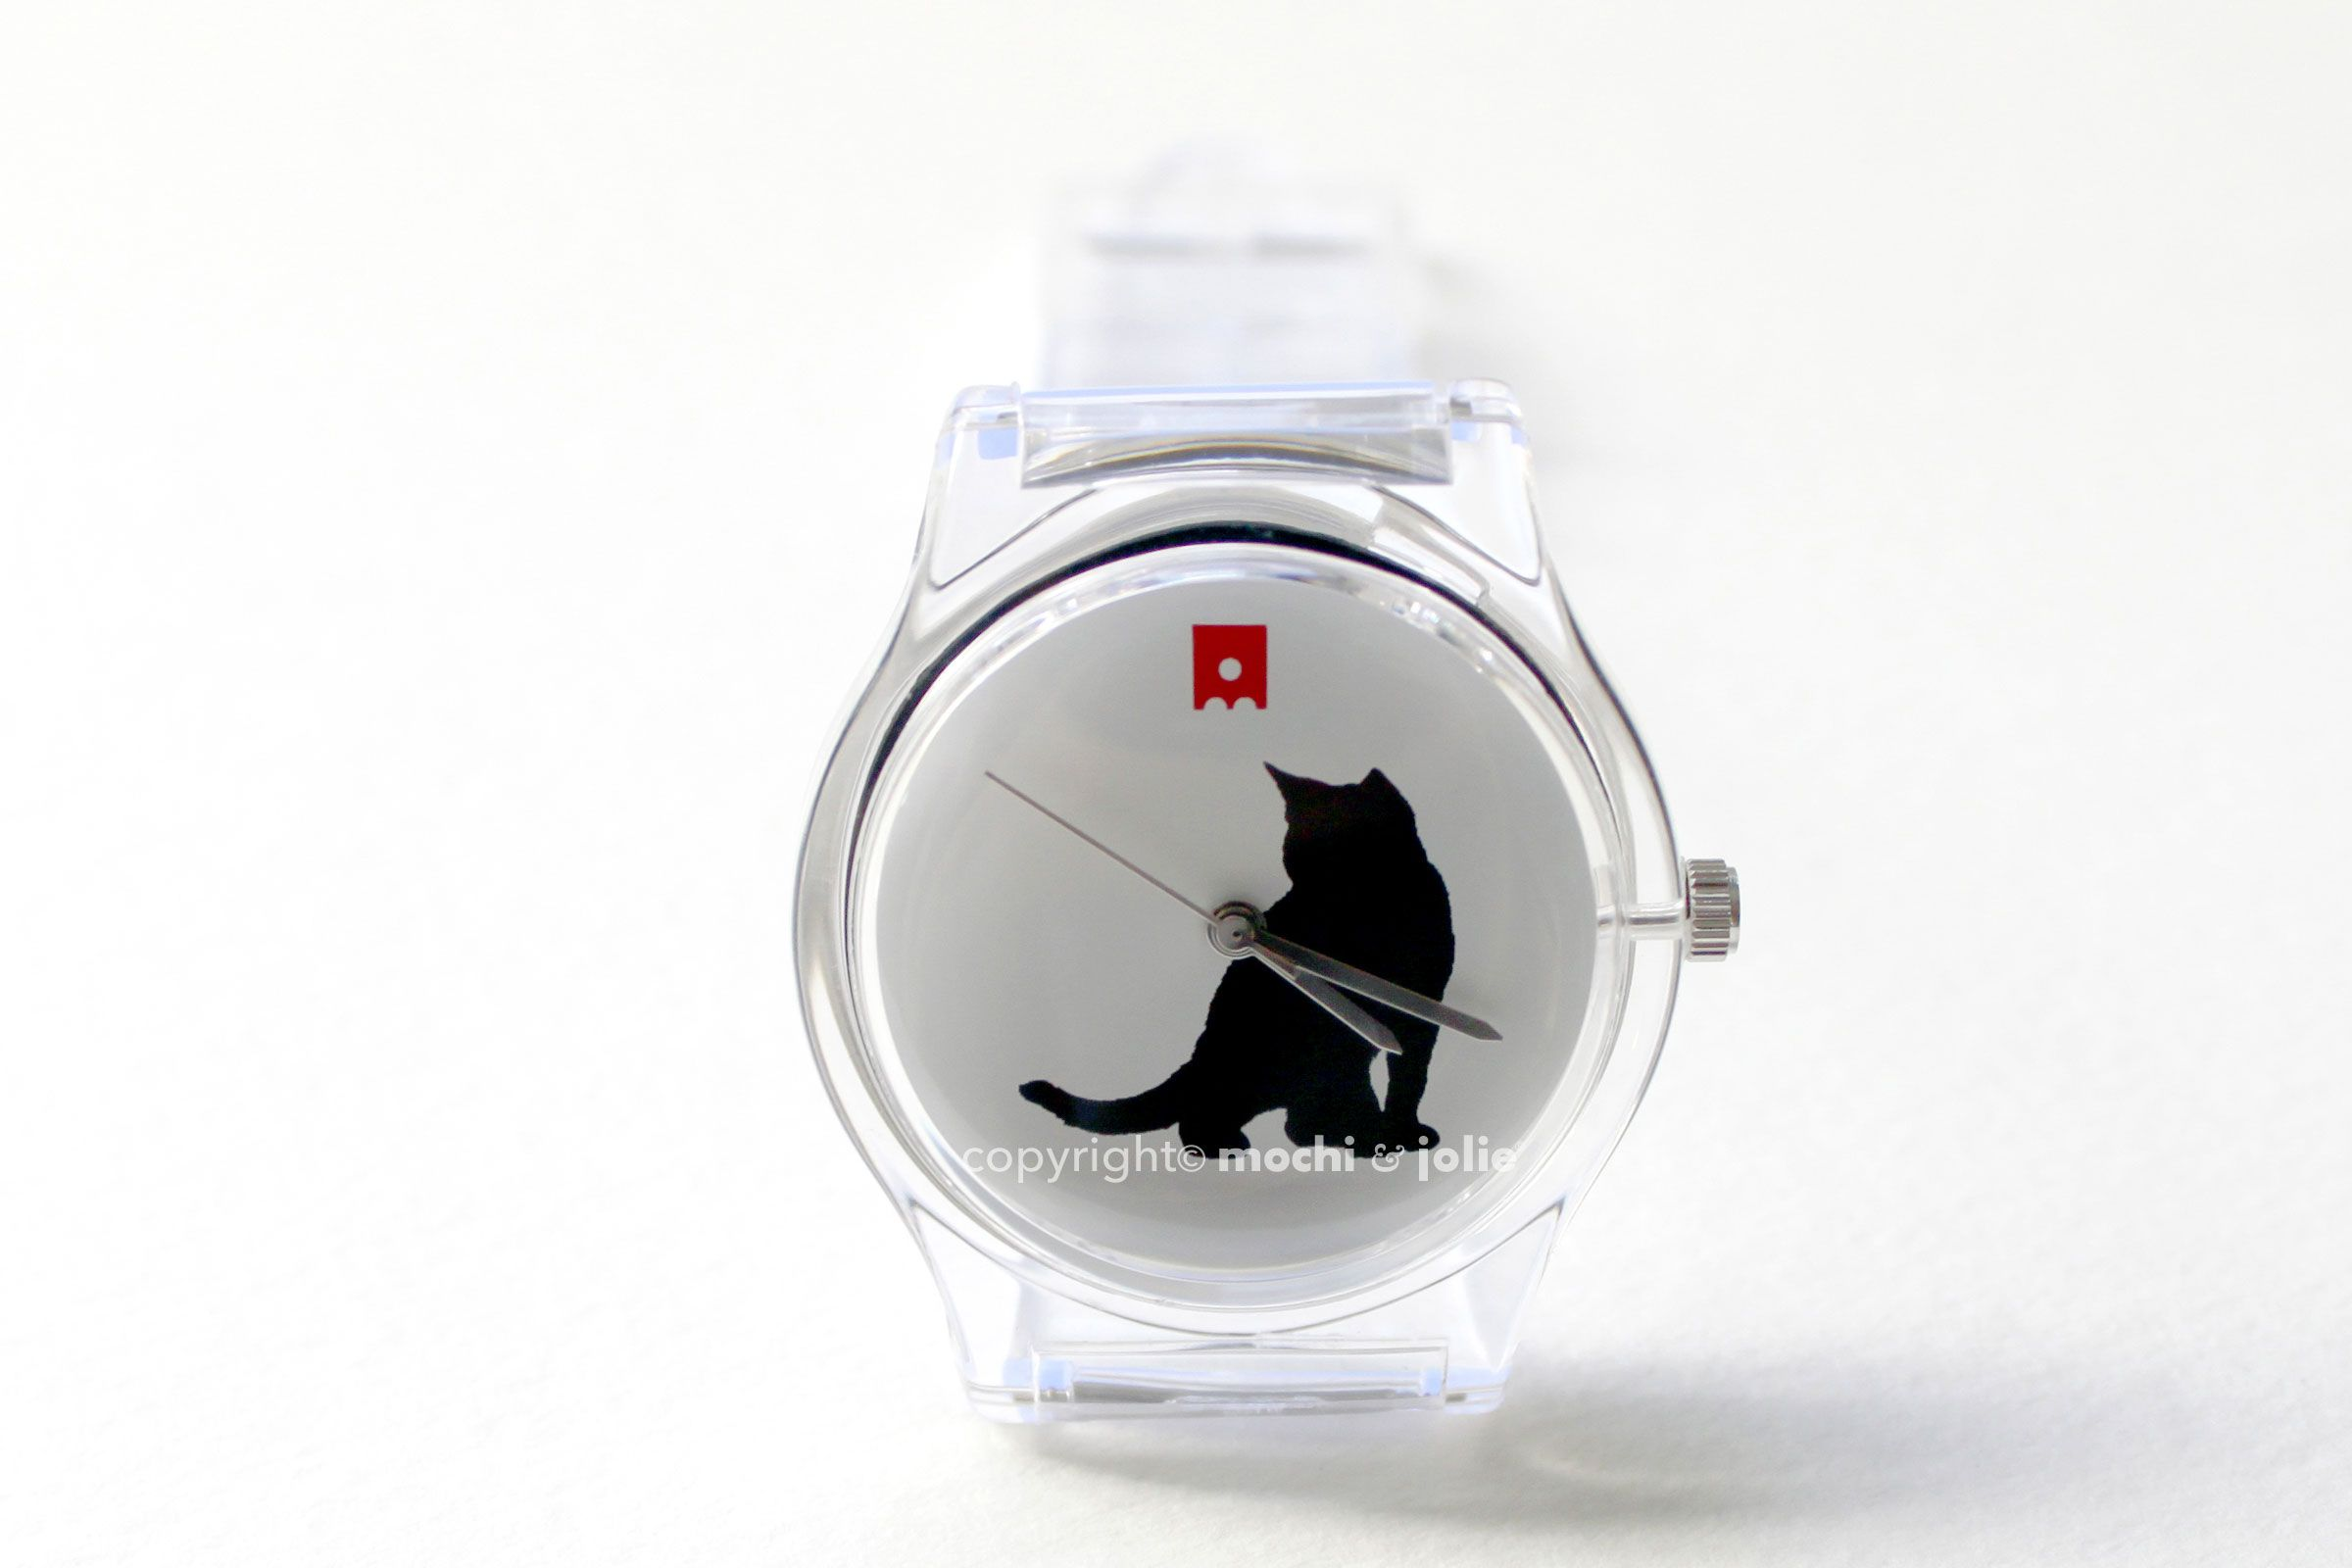 Mochi & Jolie® Cat Watch